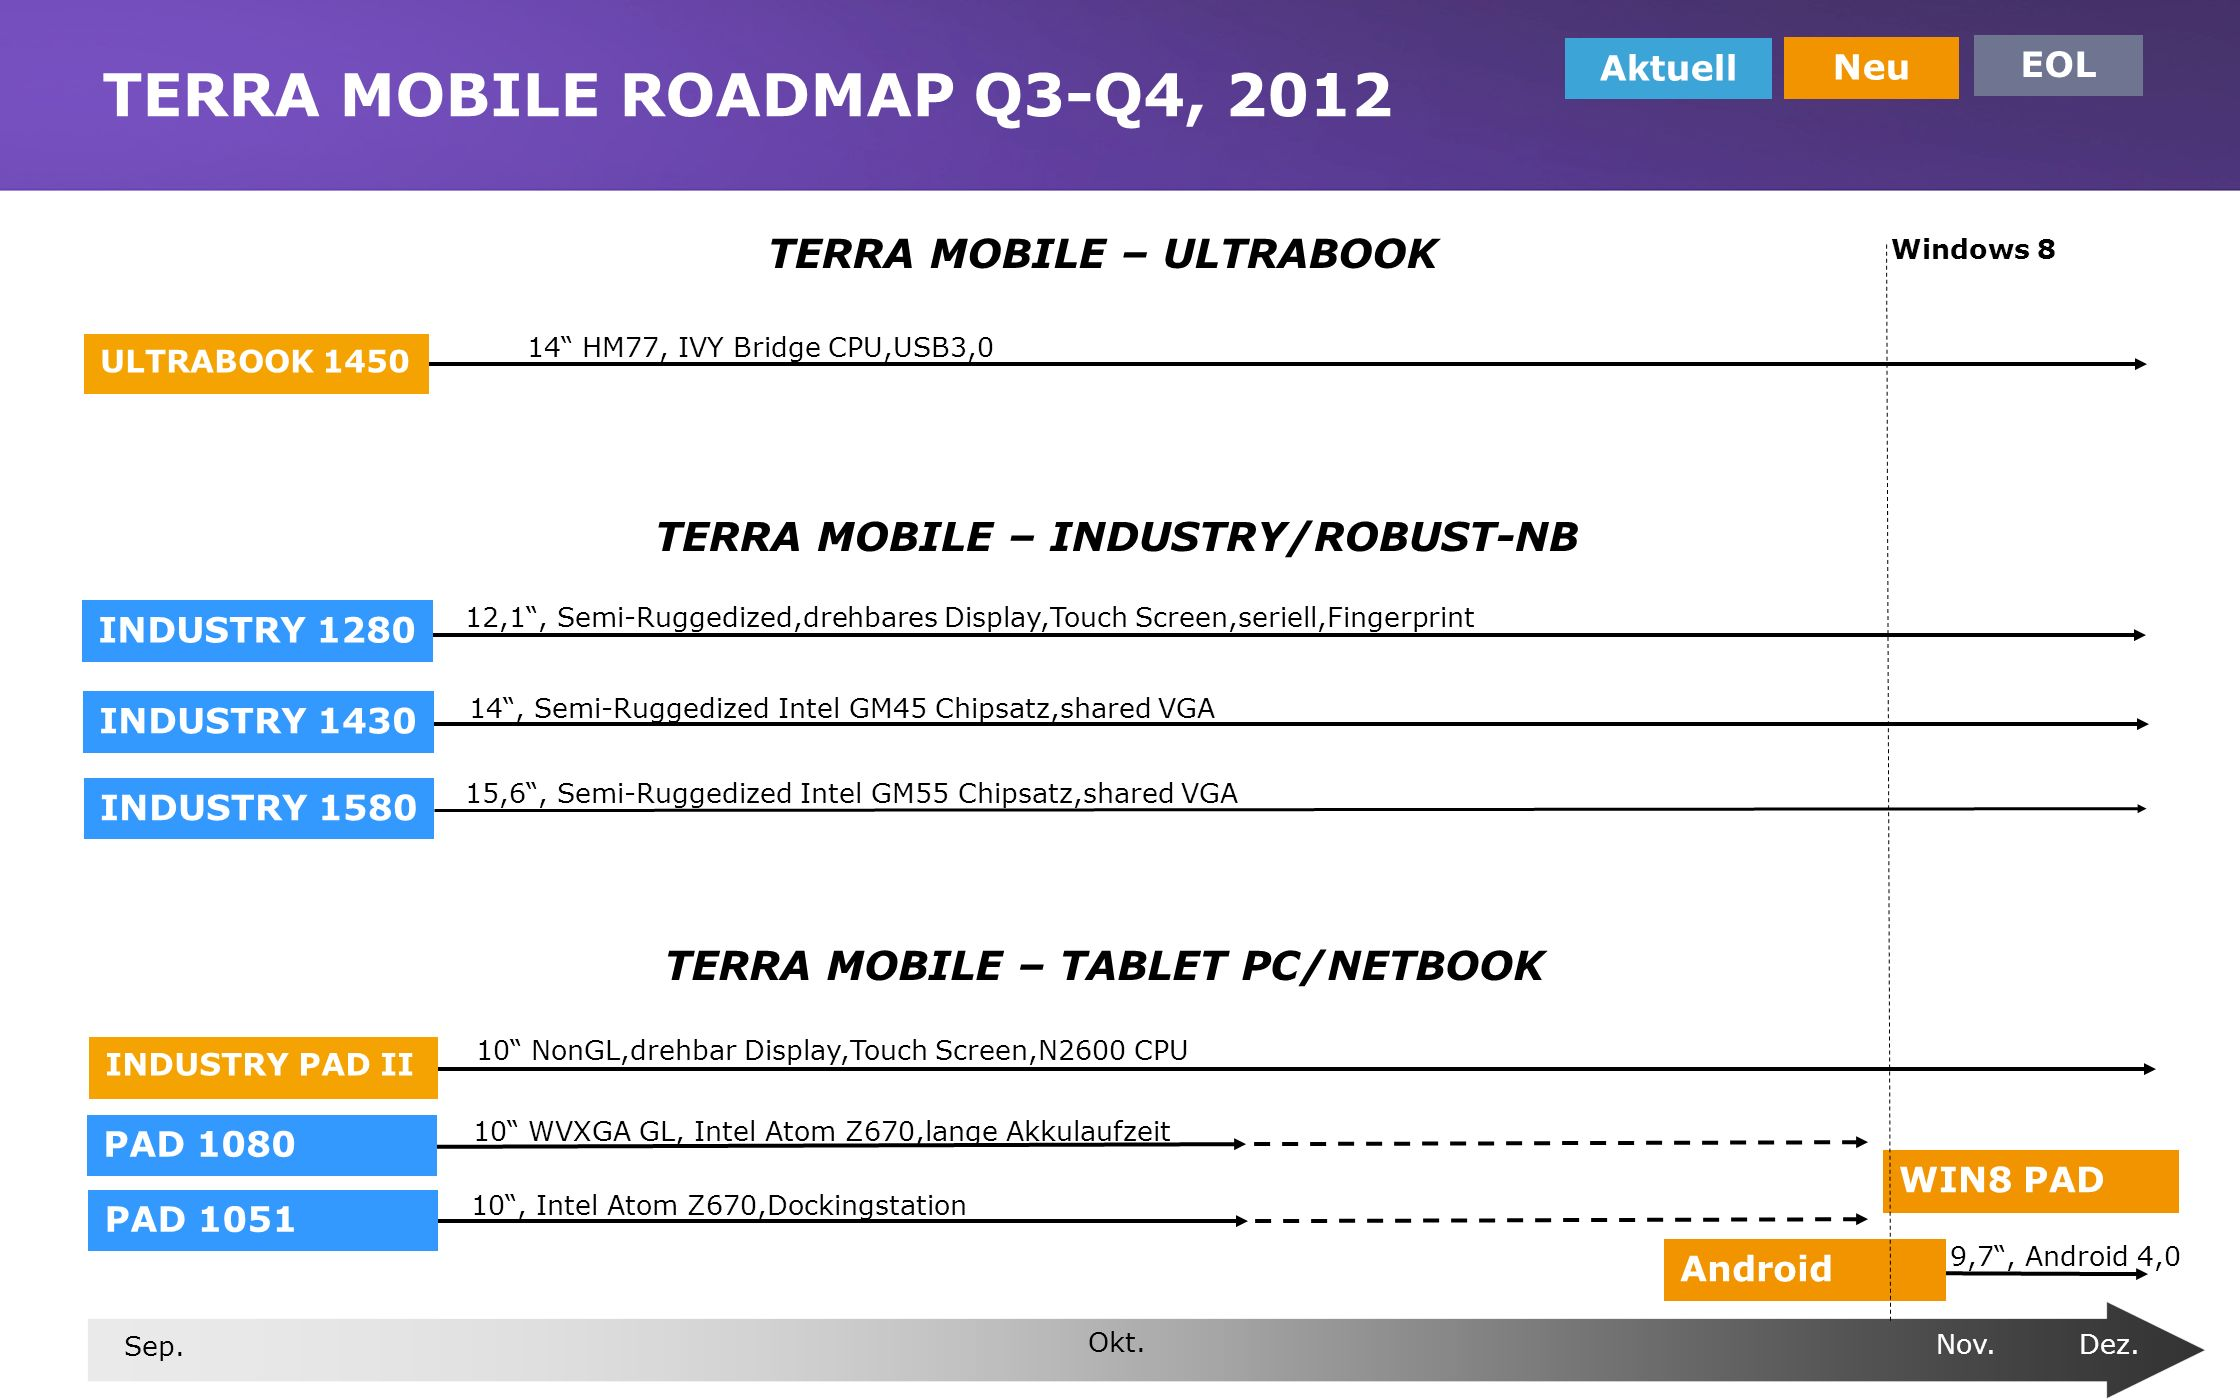 TERRA MOBILE ROADMAP Q3-Q4, 2012